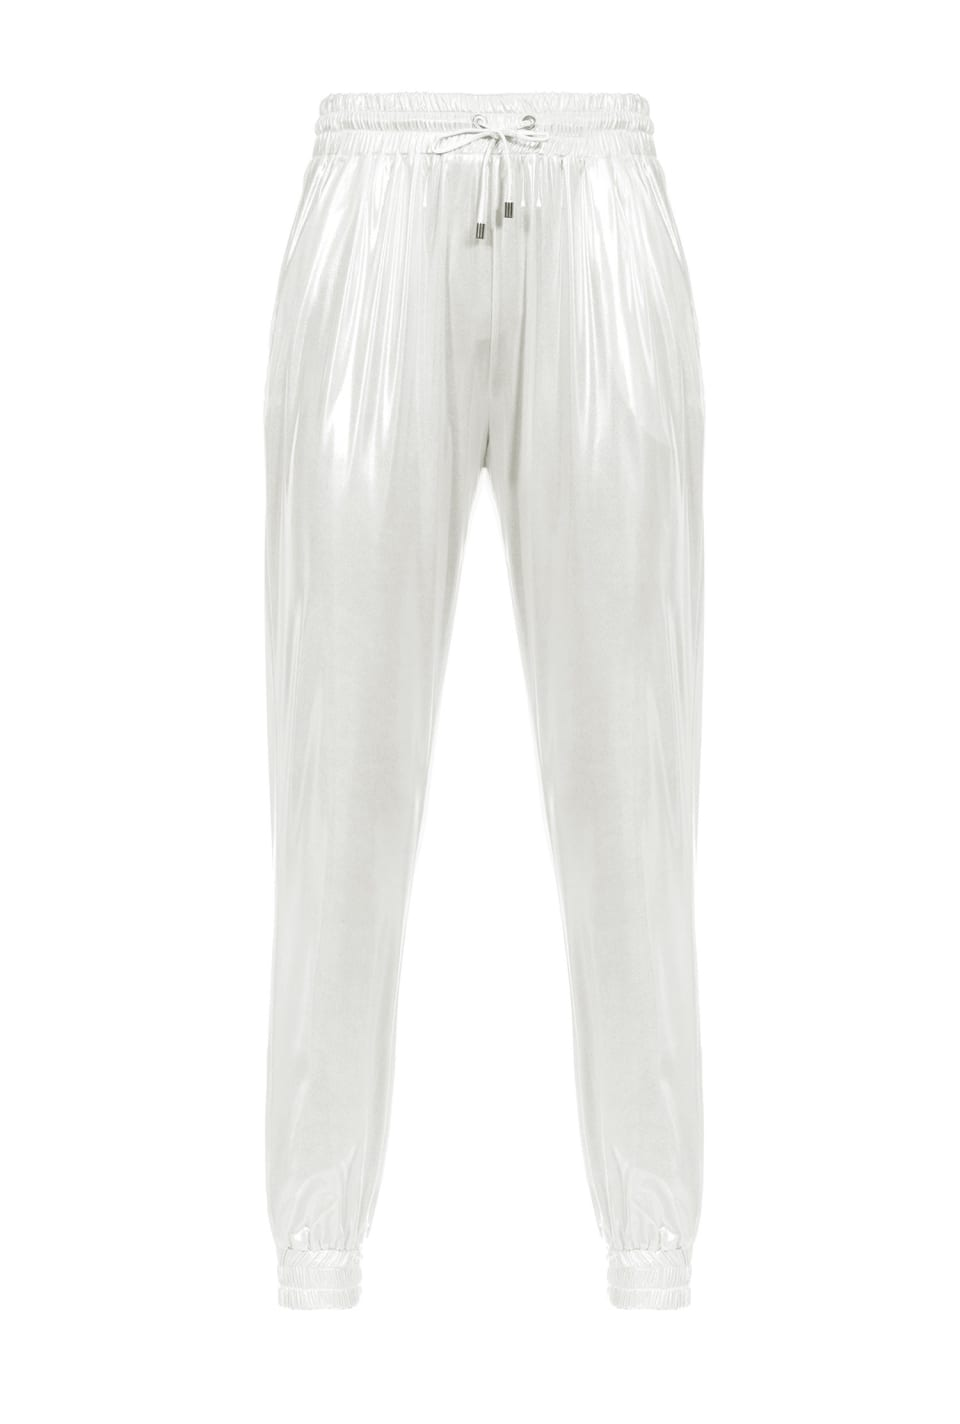 Laminated interlock joggers